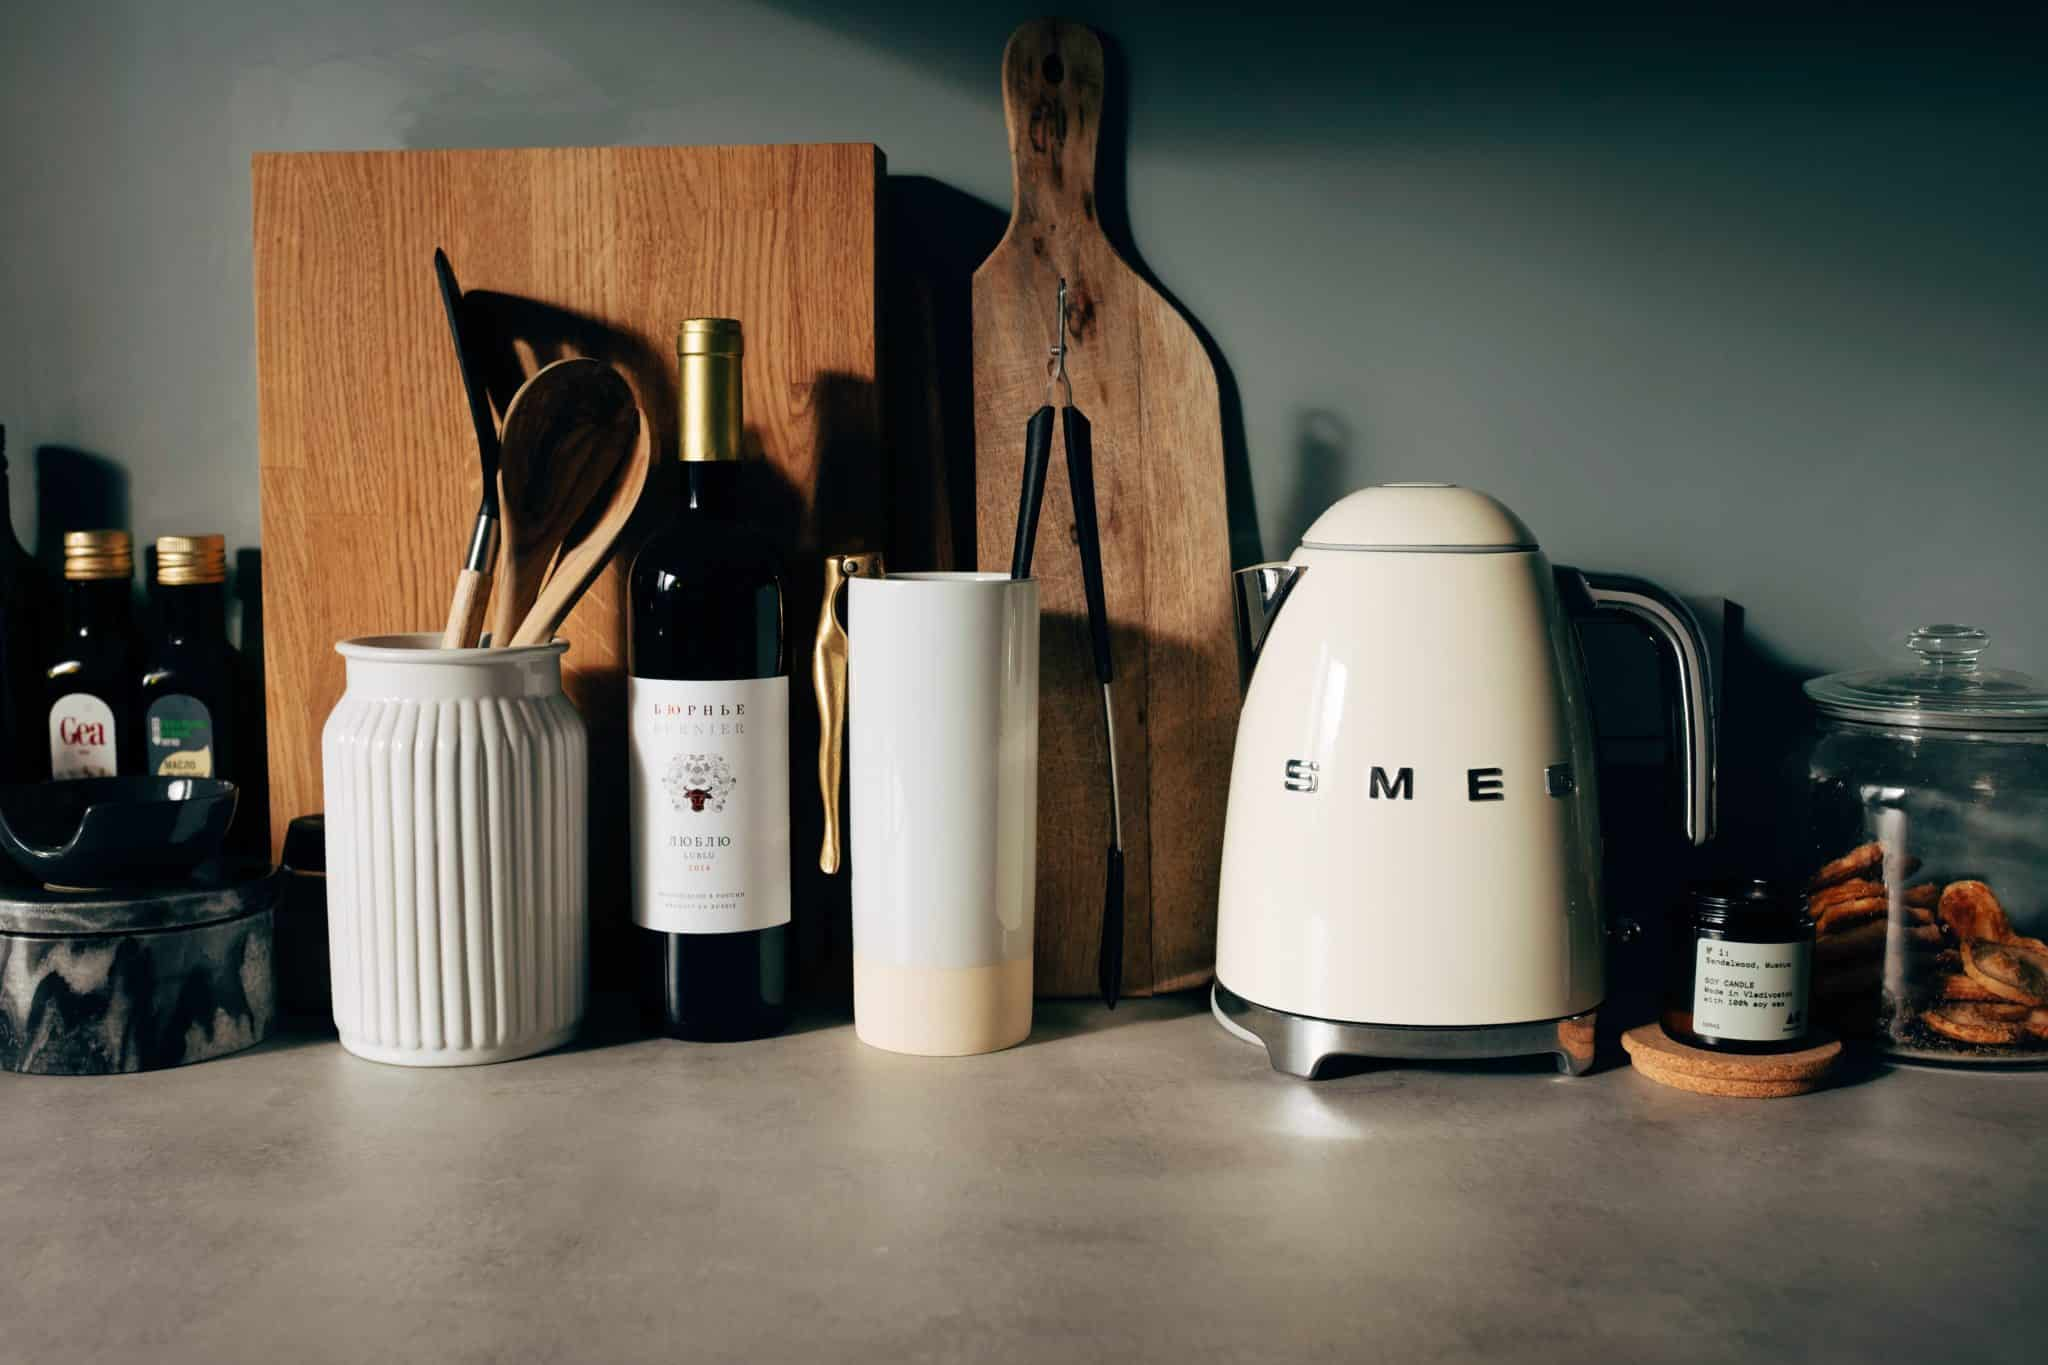 Smeg coffee maker